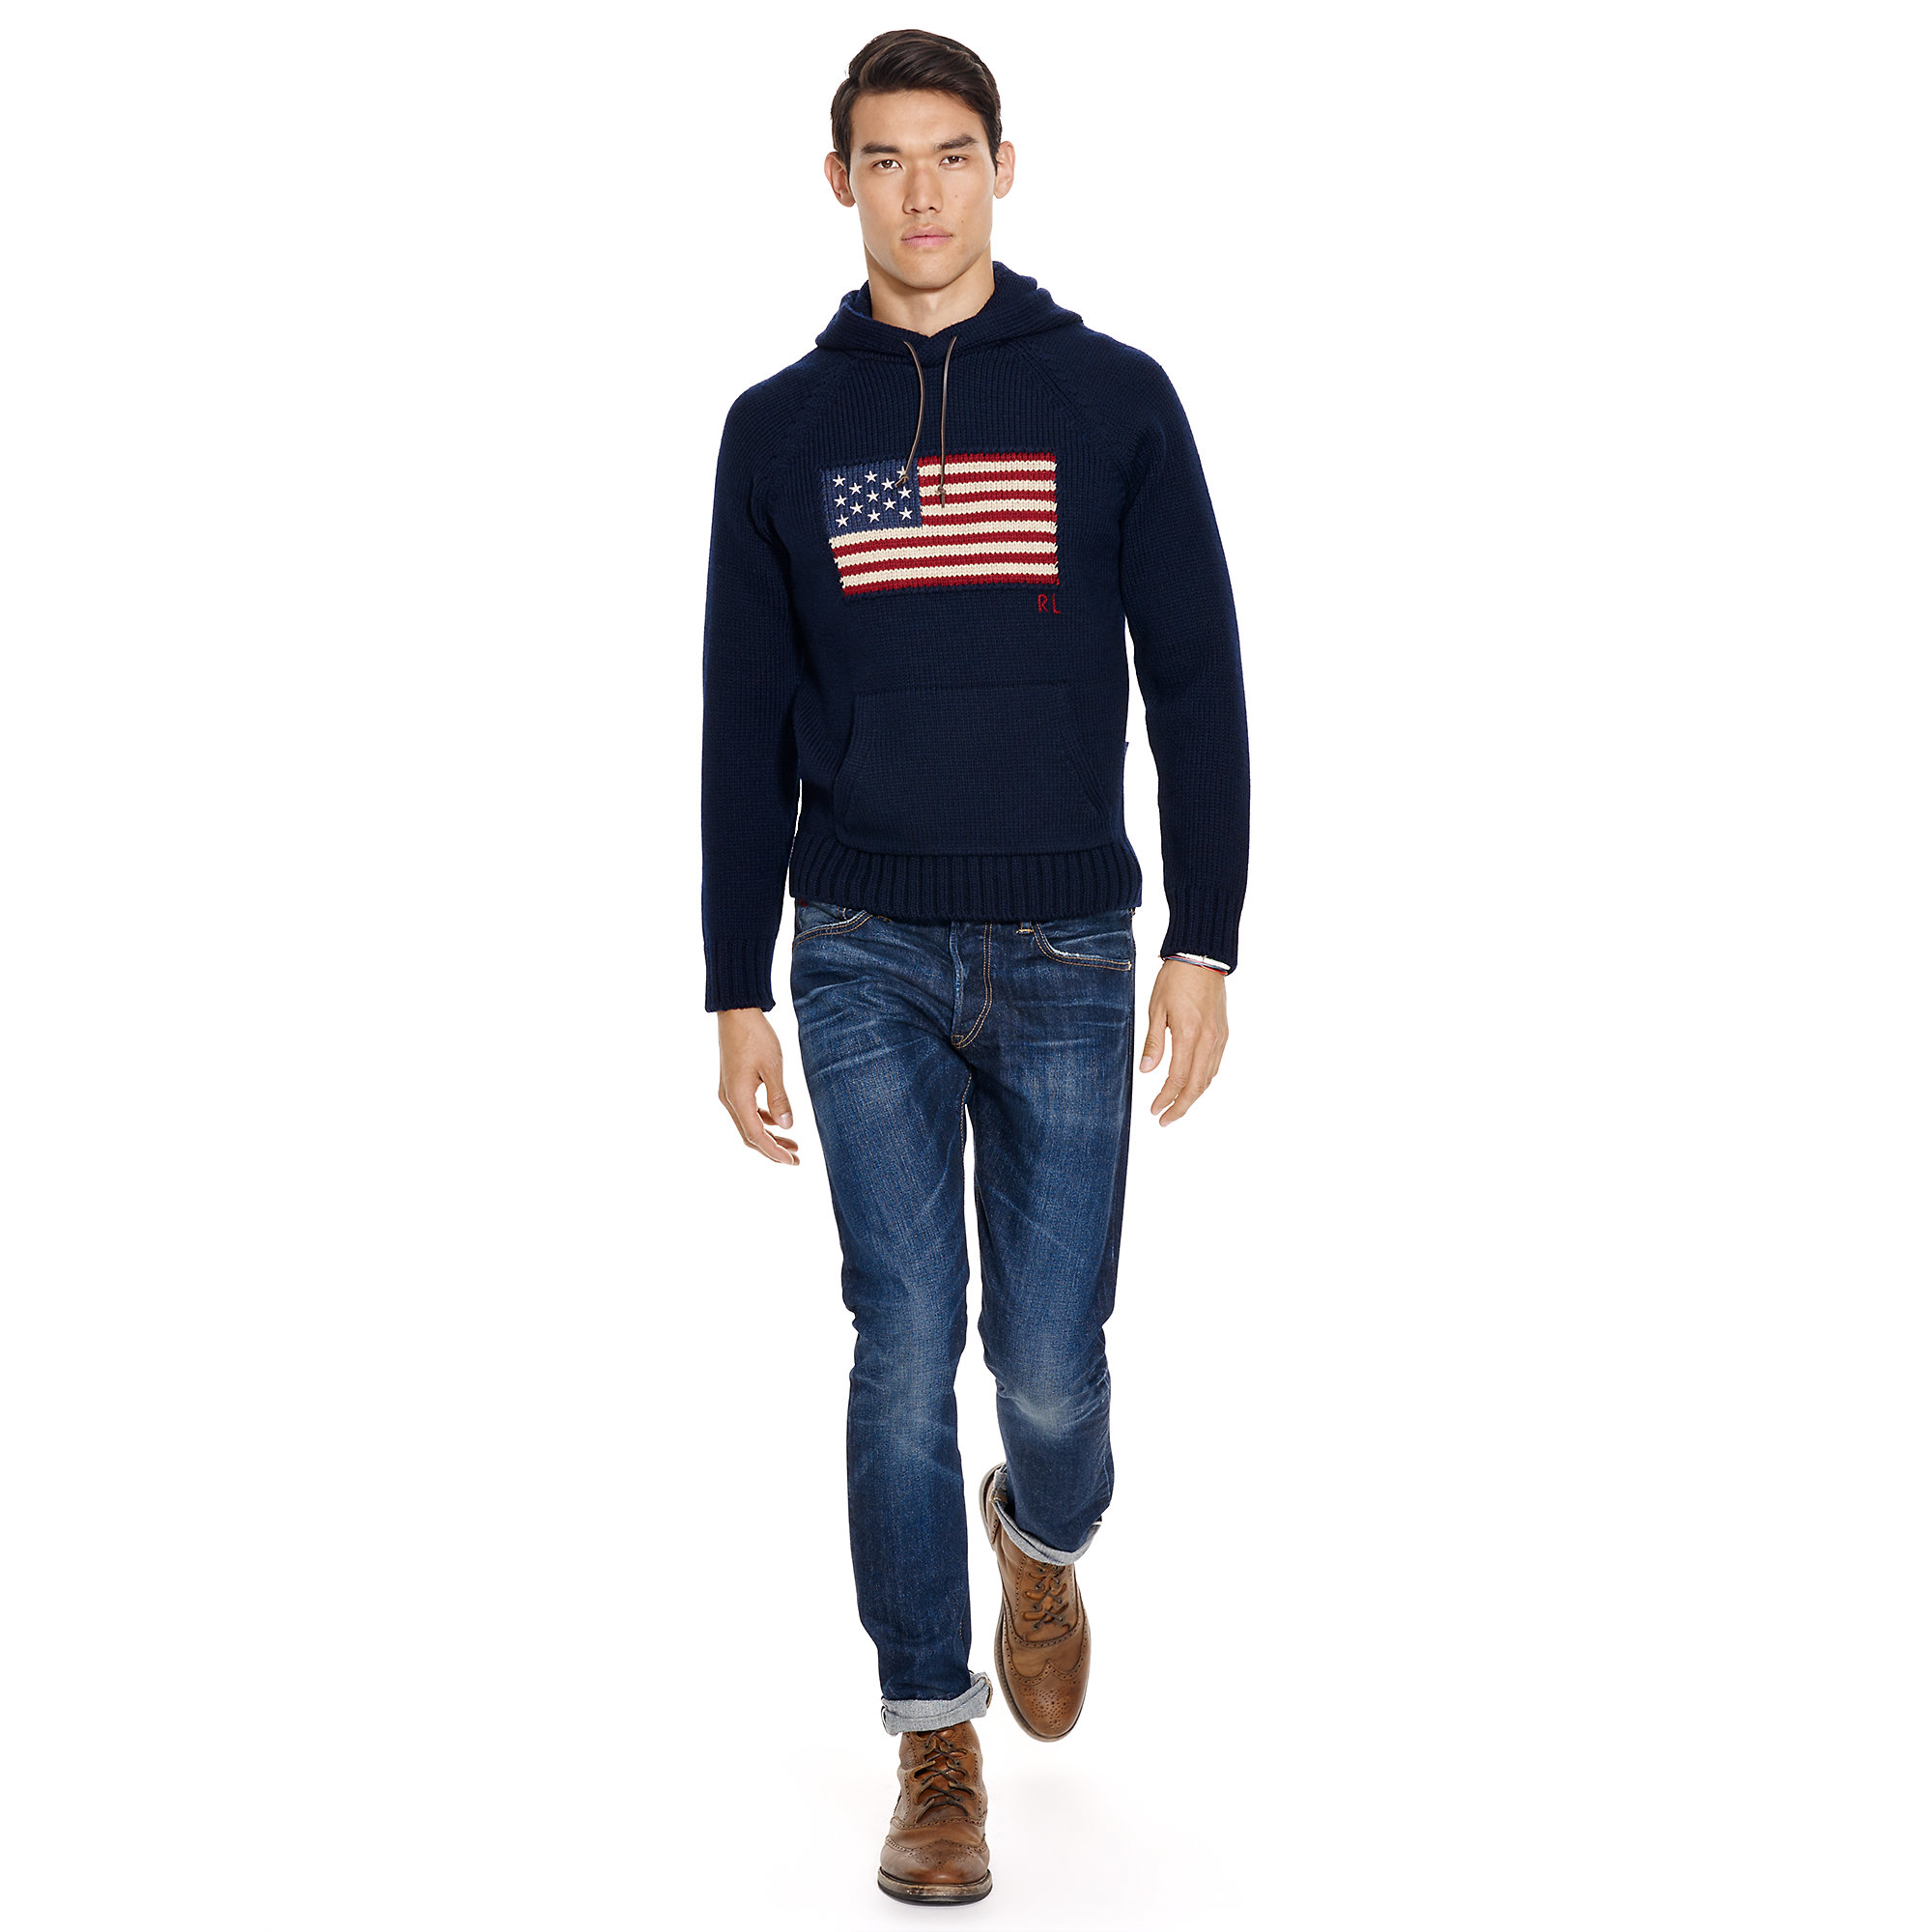 951774d44 germany lyst polo ralph lauren flag wool hooded sweater in blue for men  edc6f 9ff4d